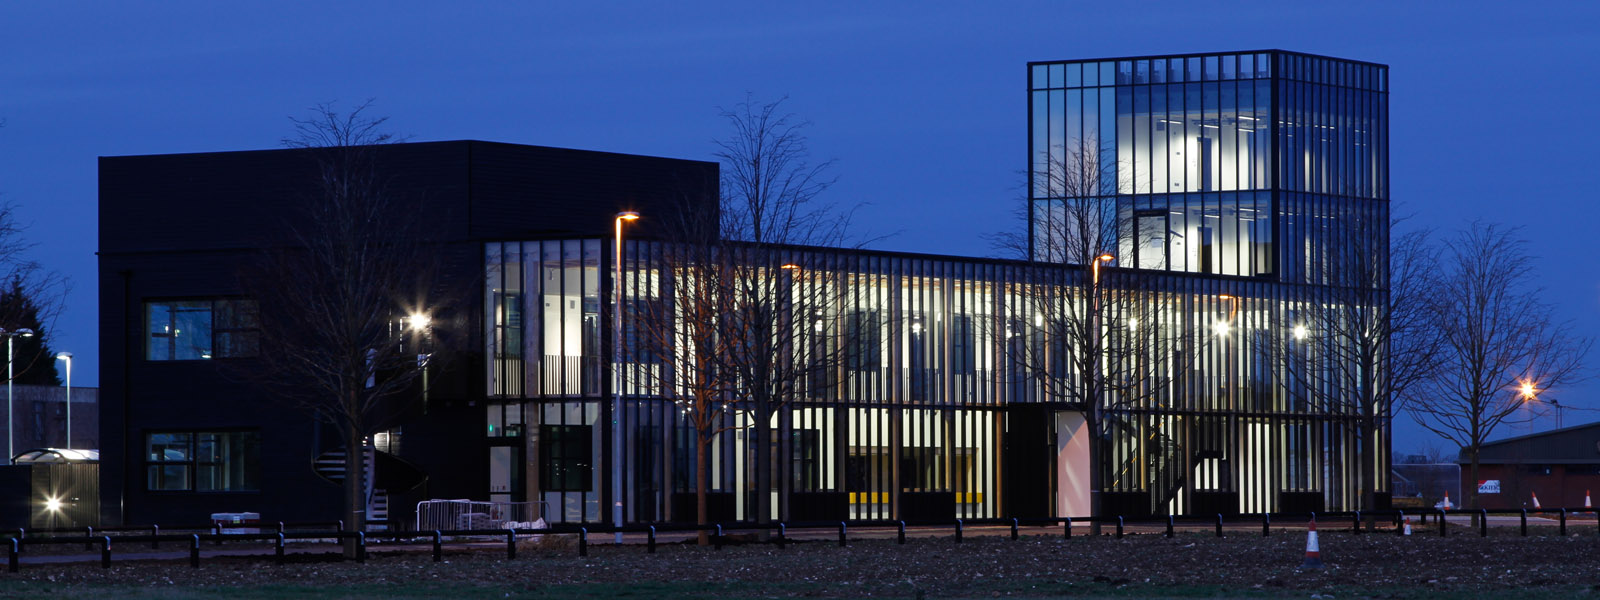 Image: Alconbury Incubator Building at night